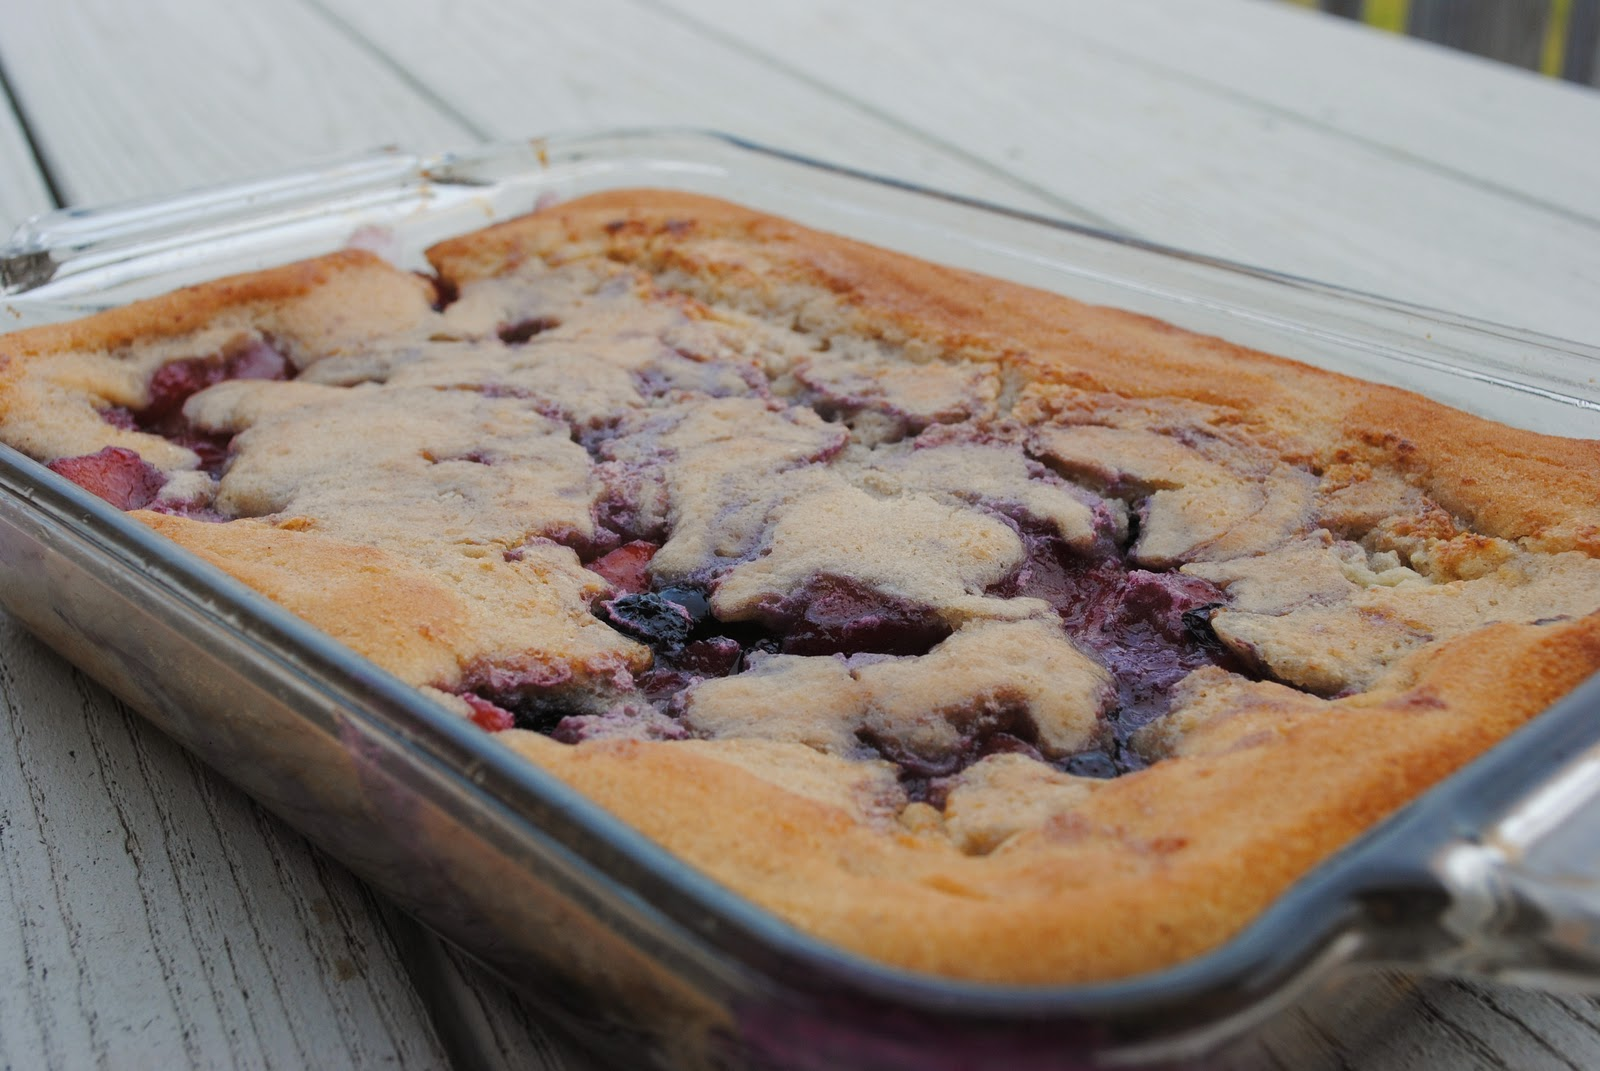 Homemade By Holman Peach Blueberry Cobbler